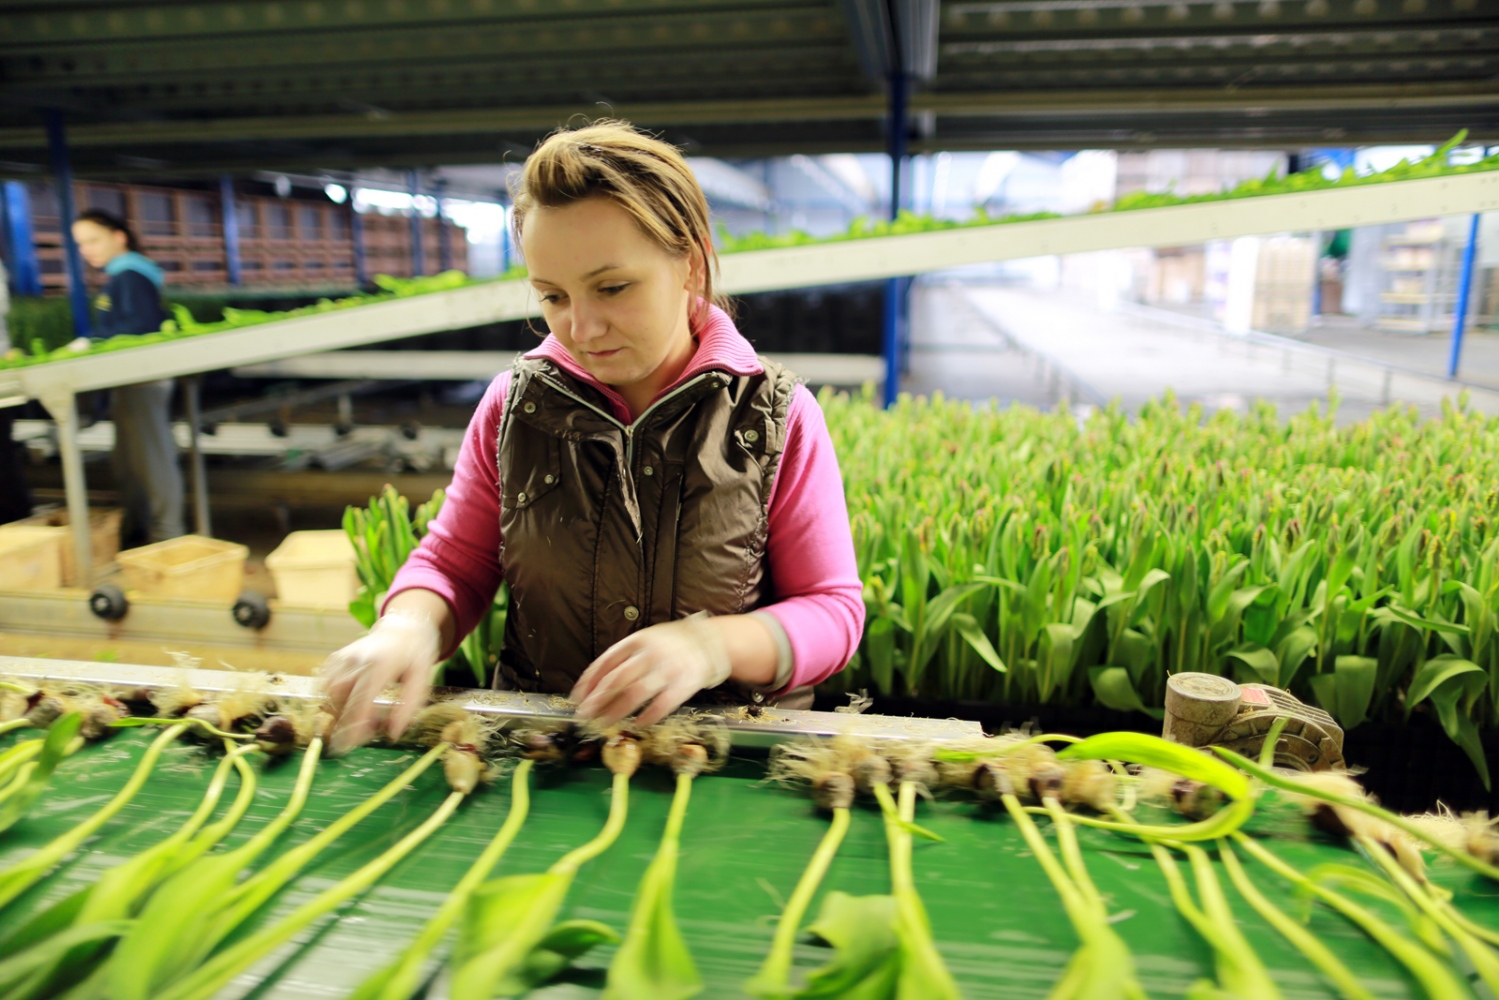 A Polish migrant worker selects Tulip bulbs on a farm near Den Helder, Nord-Holland.Hollandexports more than $1 Billion worth of tulips per year.